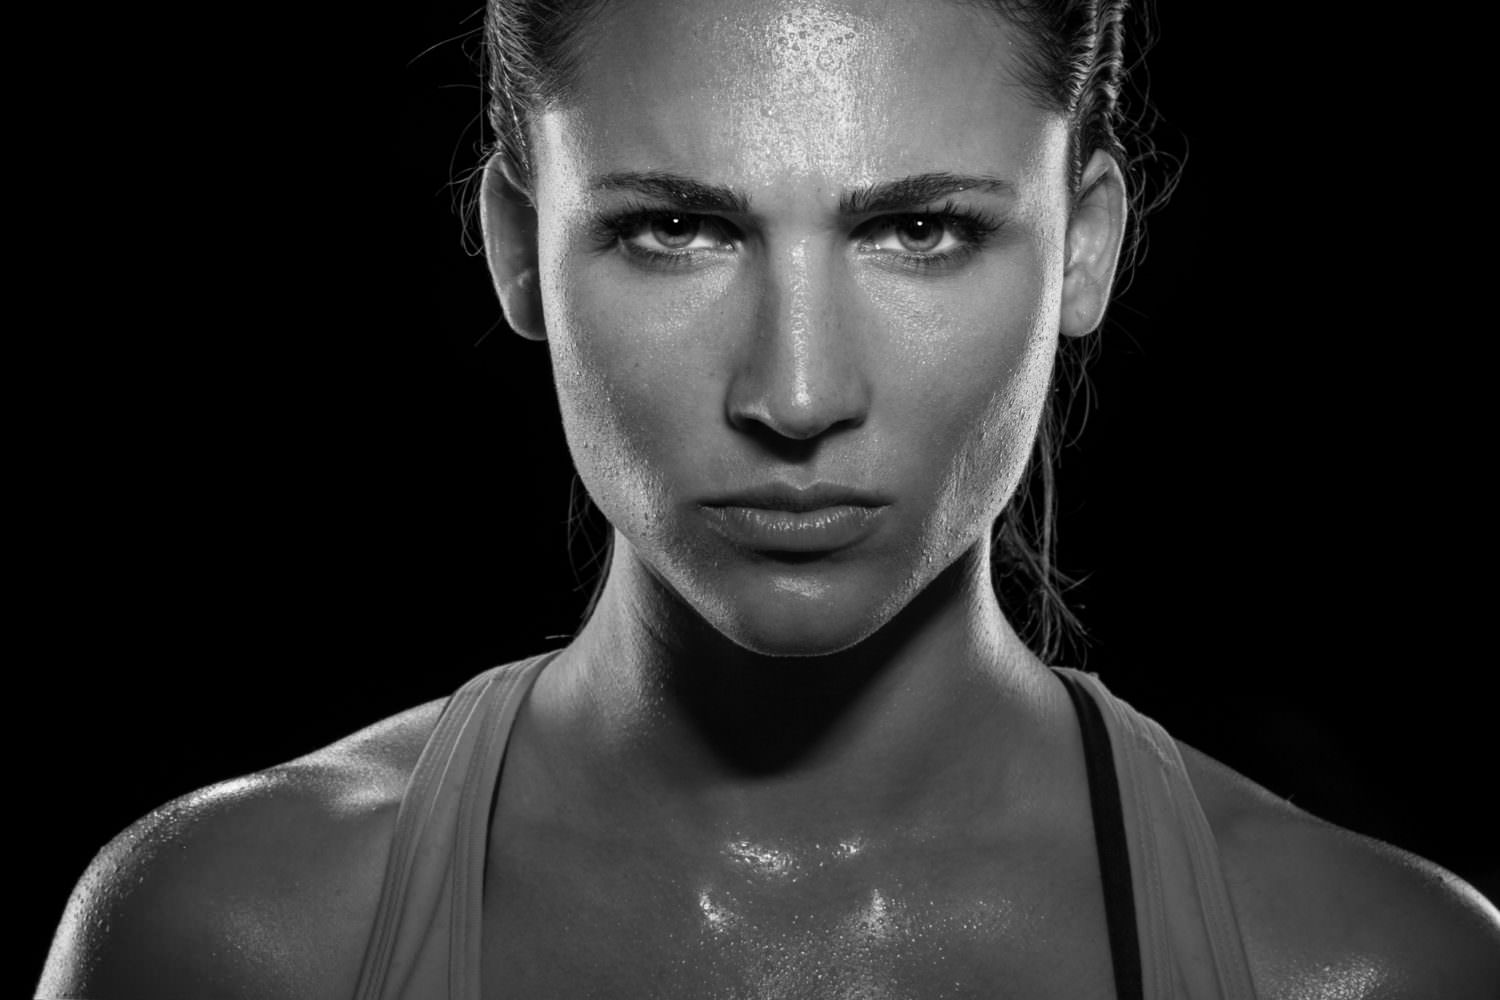 Intense stare eyes determined athlete champion glare head shot s